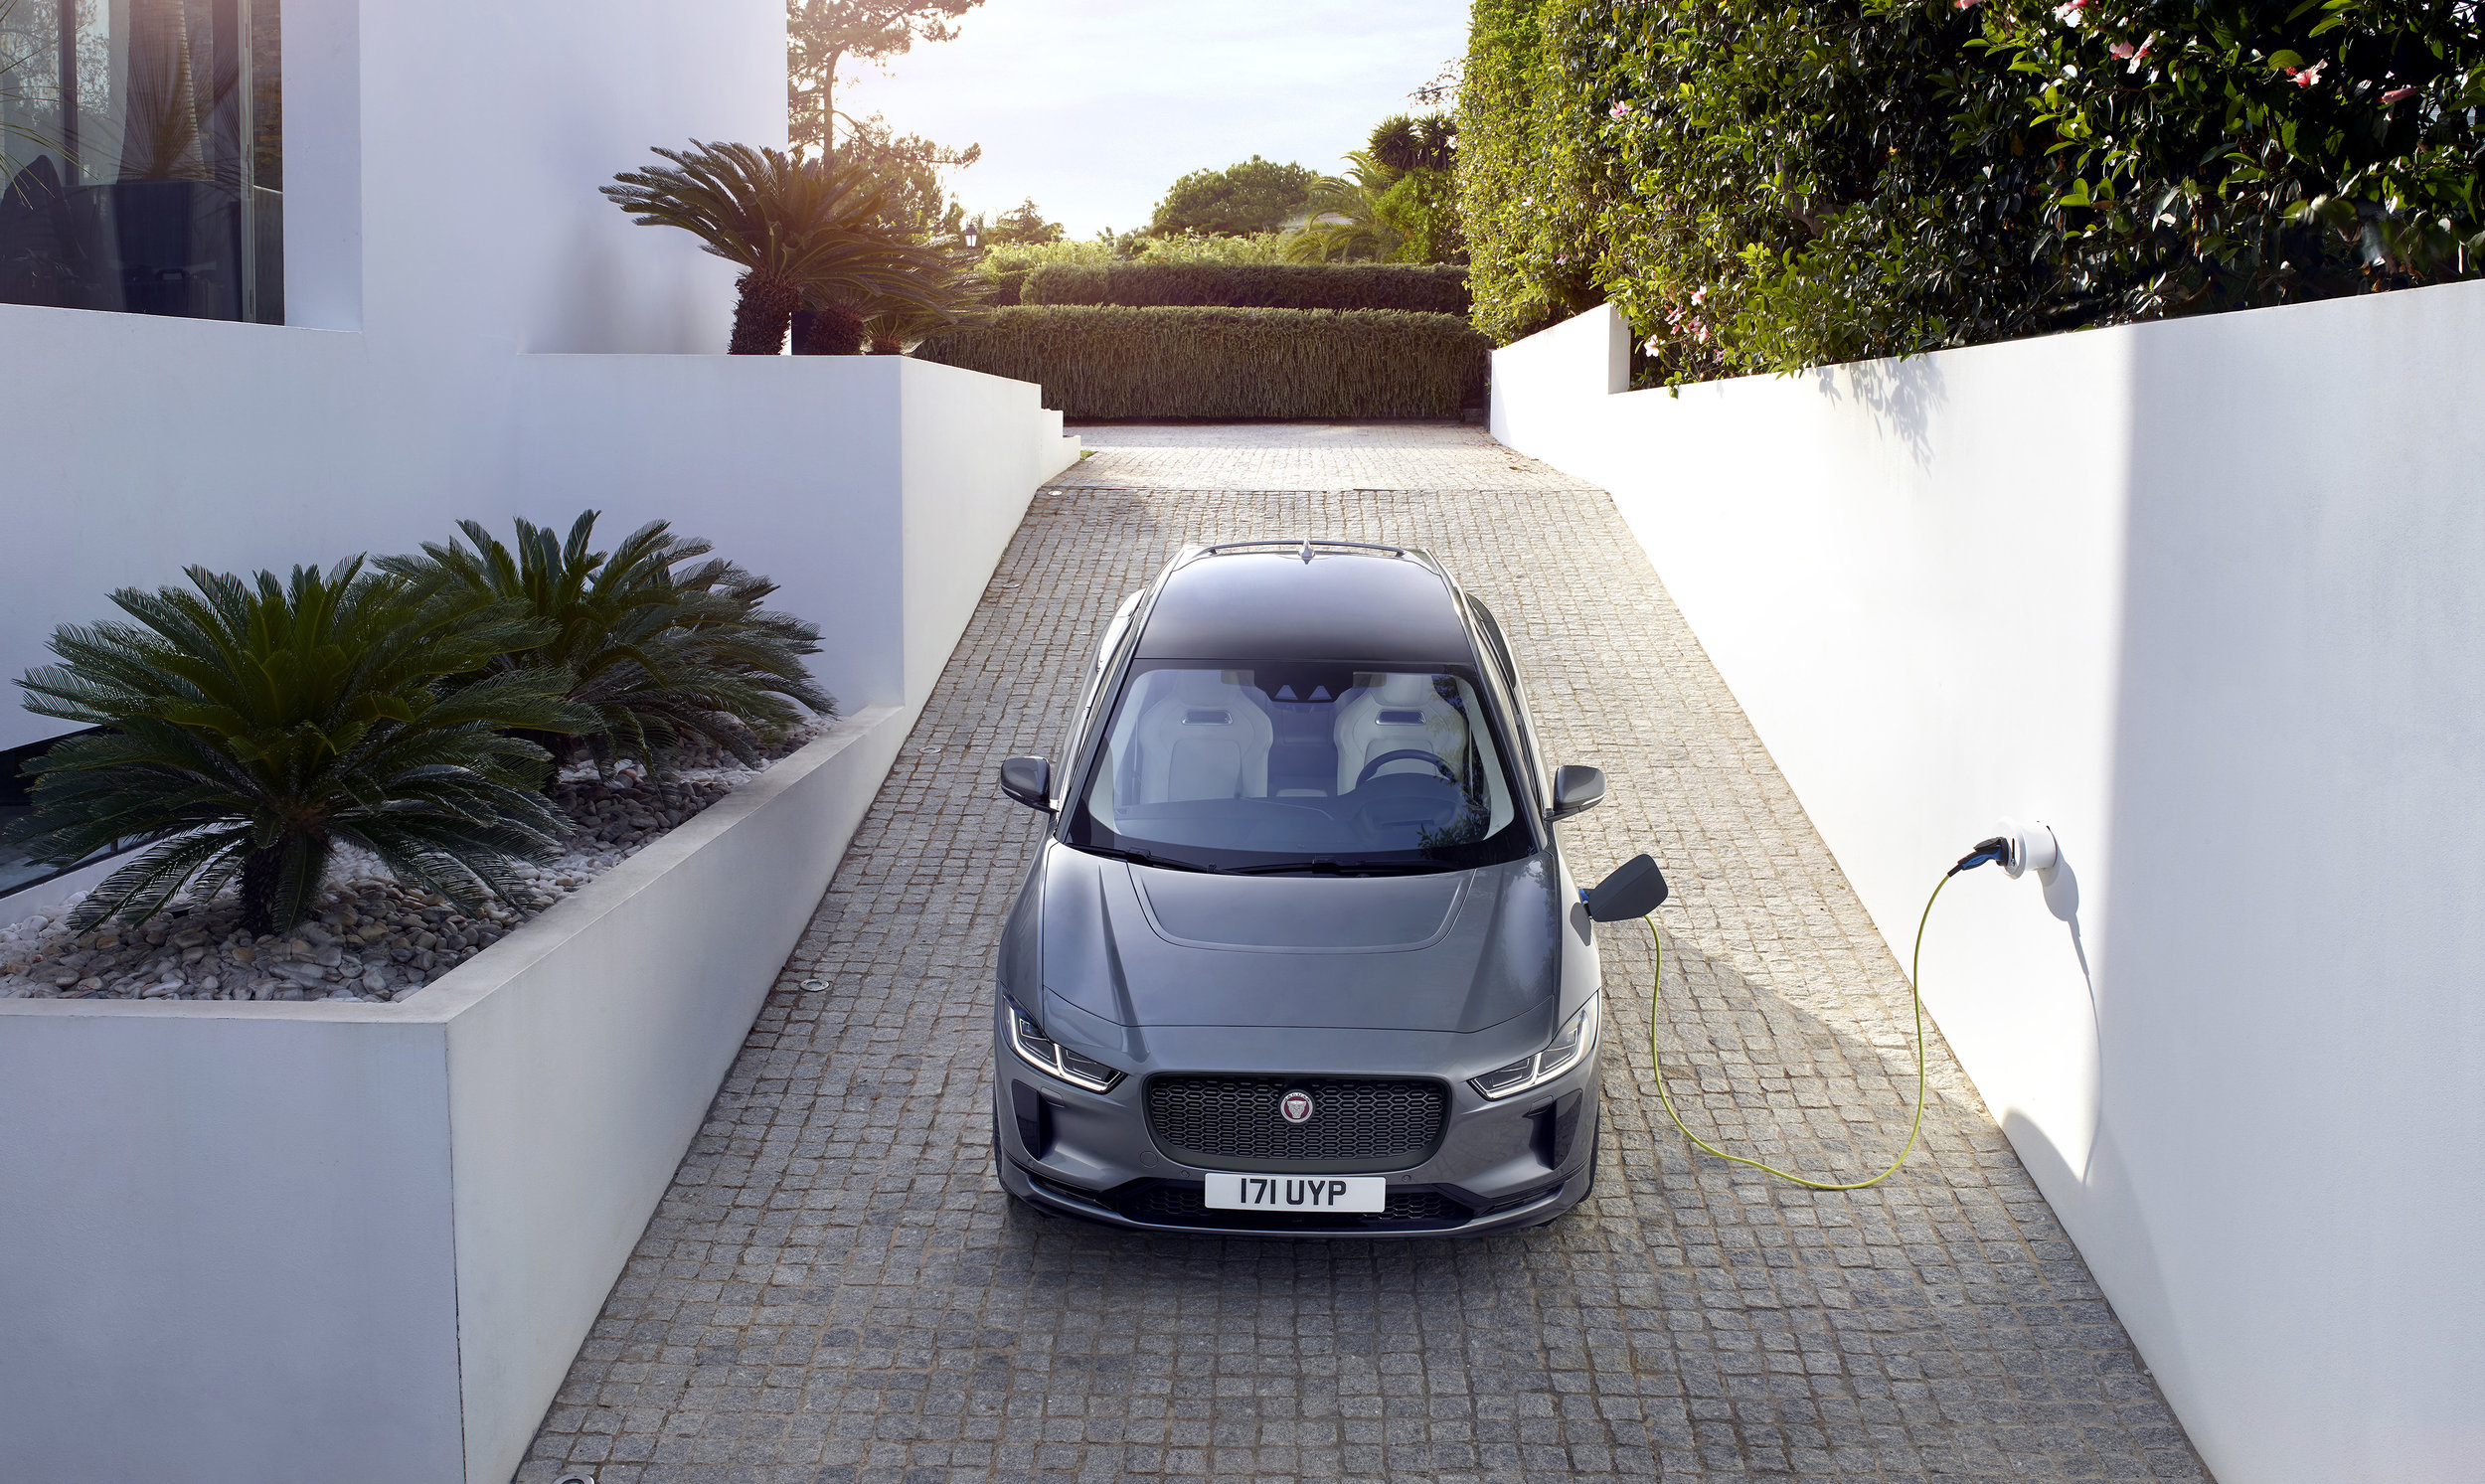 *Overseas model shown - Australian charging station and vehicle may be different